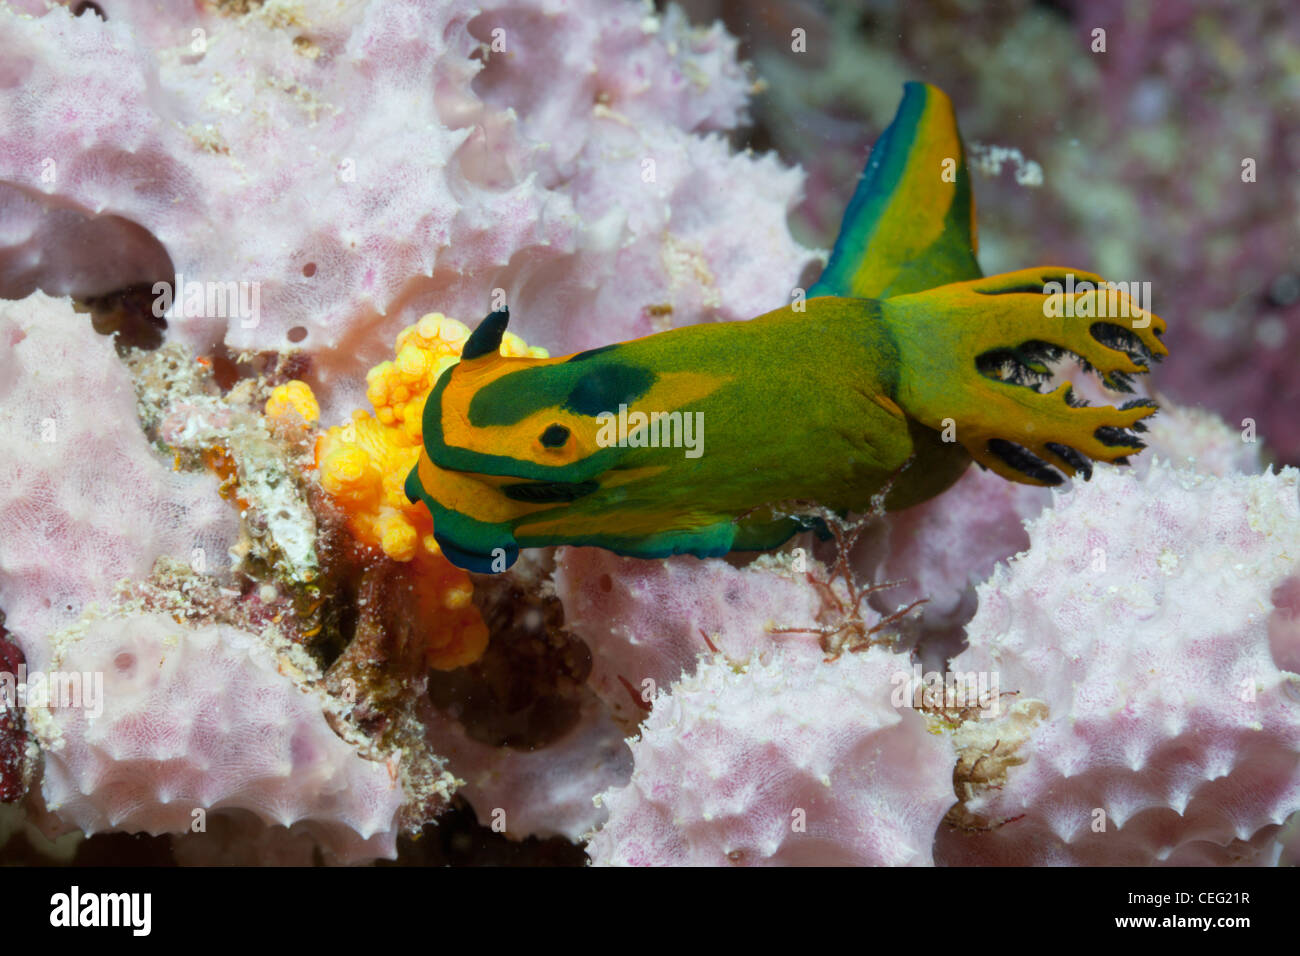 Sea Slug, Tambja olivaria, Baa Atoll, Indian Ocean, Maldives - Stock Image